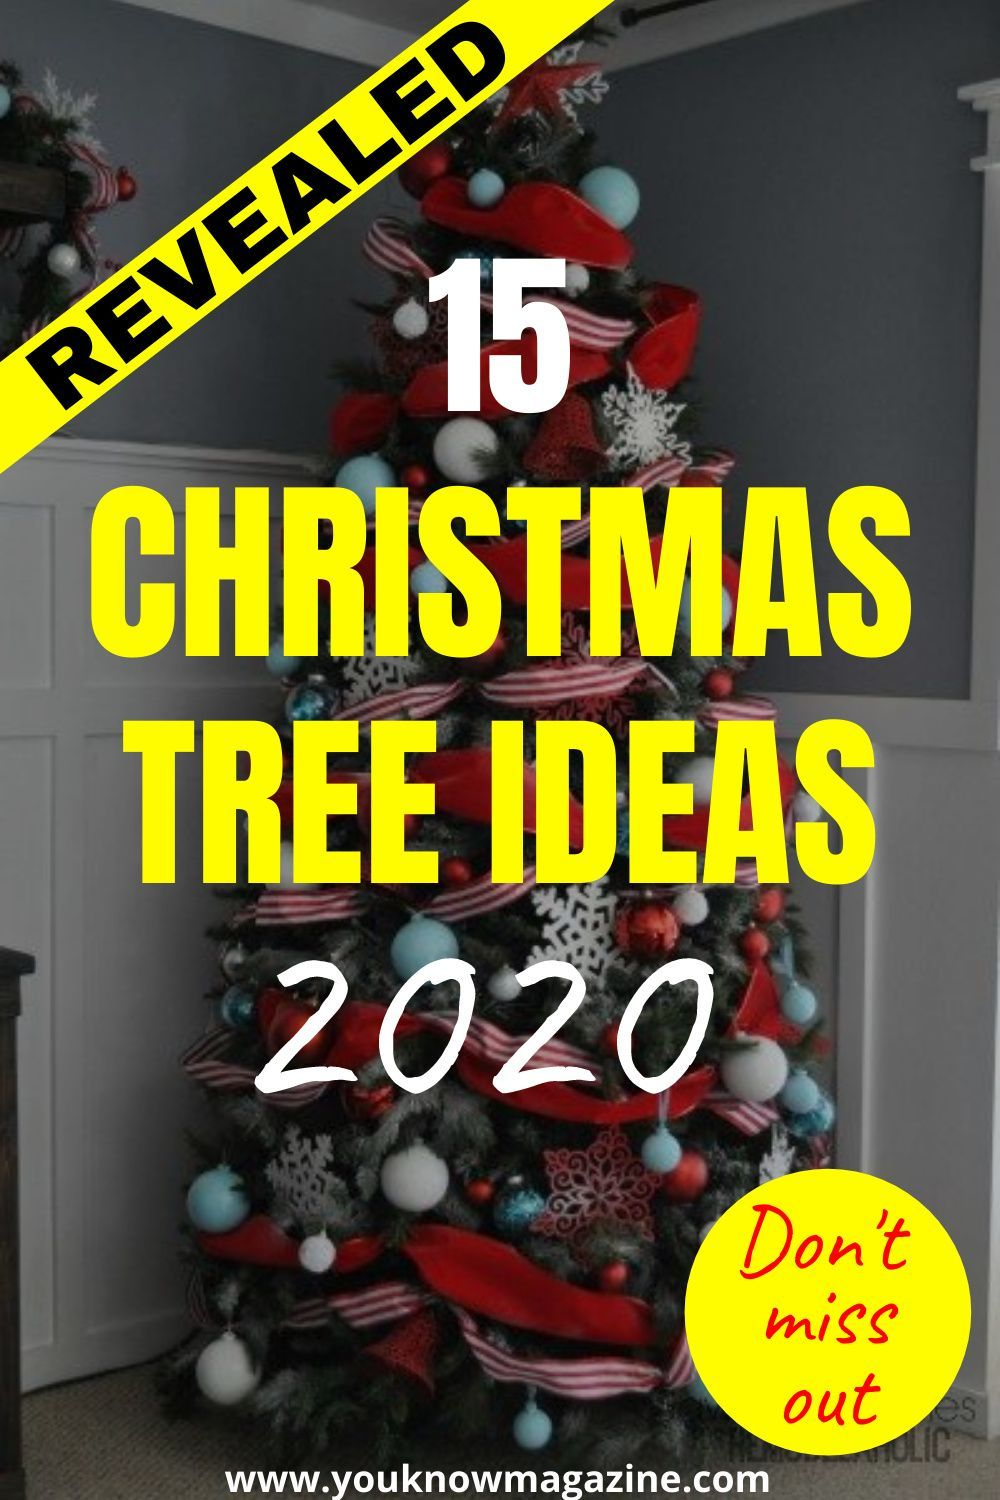 Revealed The Best 15 Christmas Tree Ideas For 2020 You Know Magazine In 2020 Magical Christmas Christmas Tree Tree